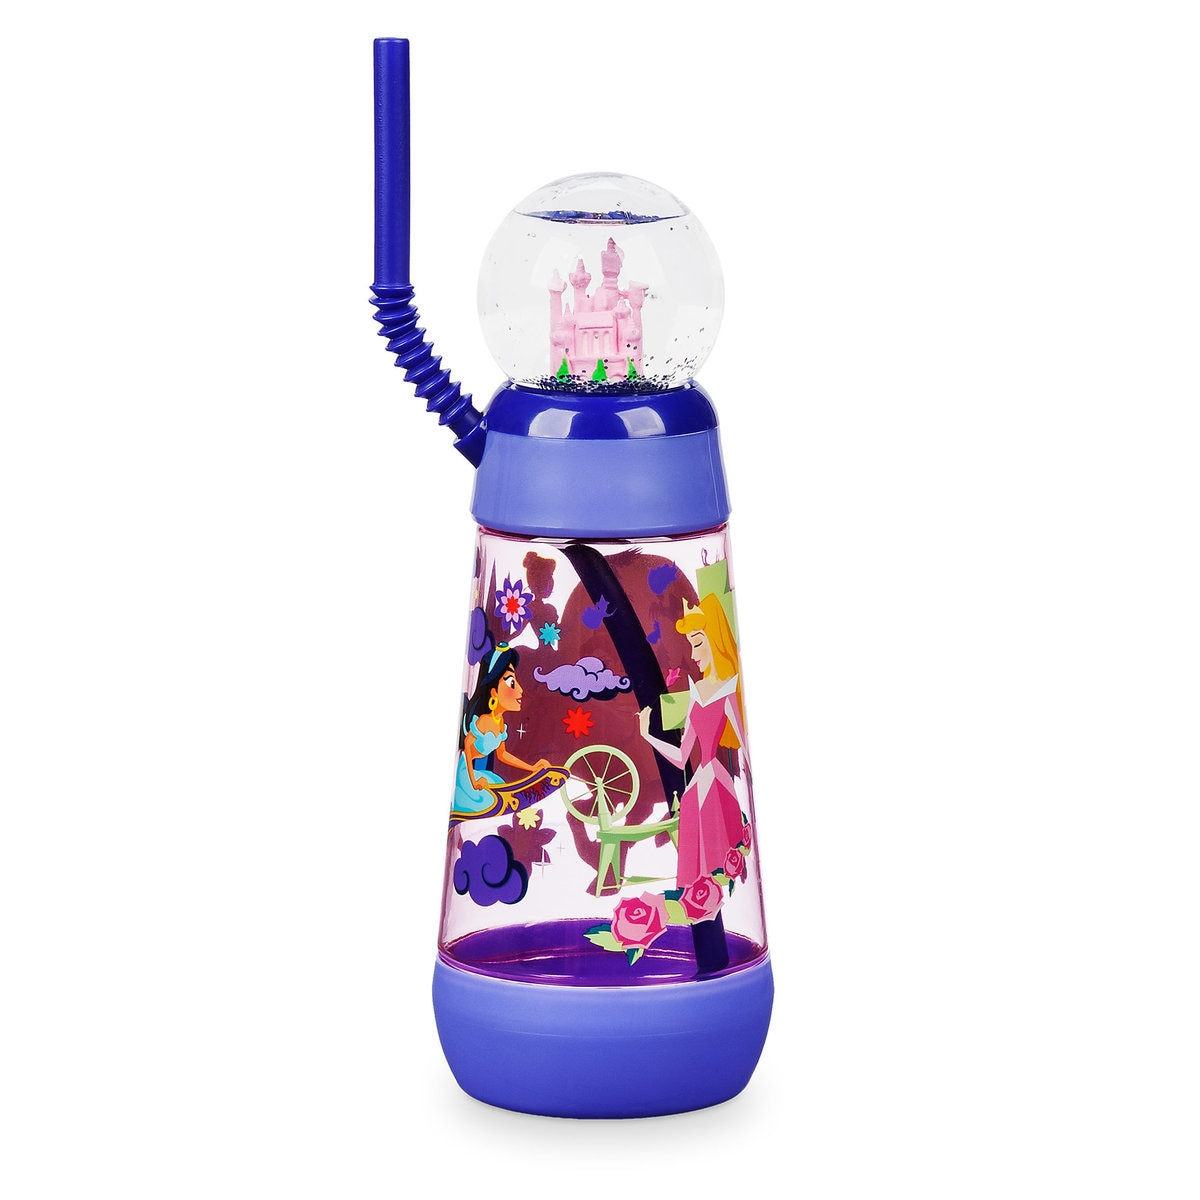 45e1d7e1233 Disney Princess Snowglobe Tumbler with Straw